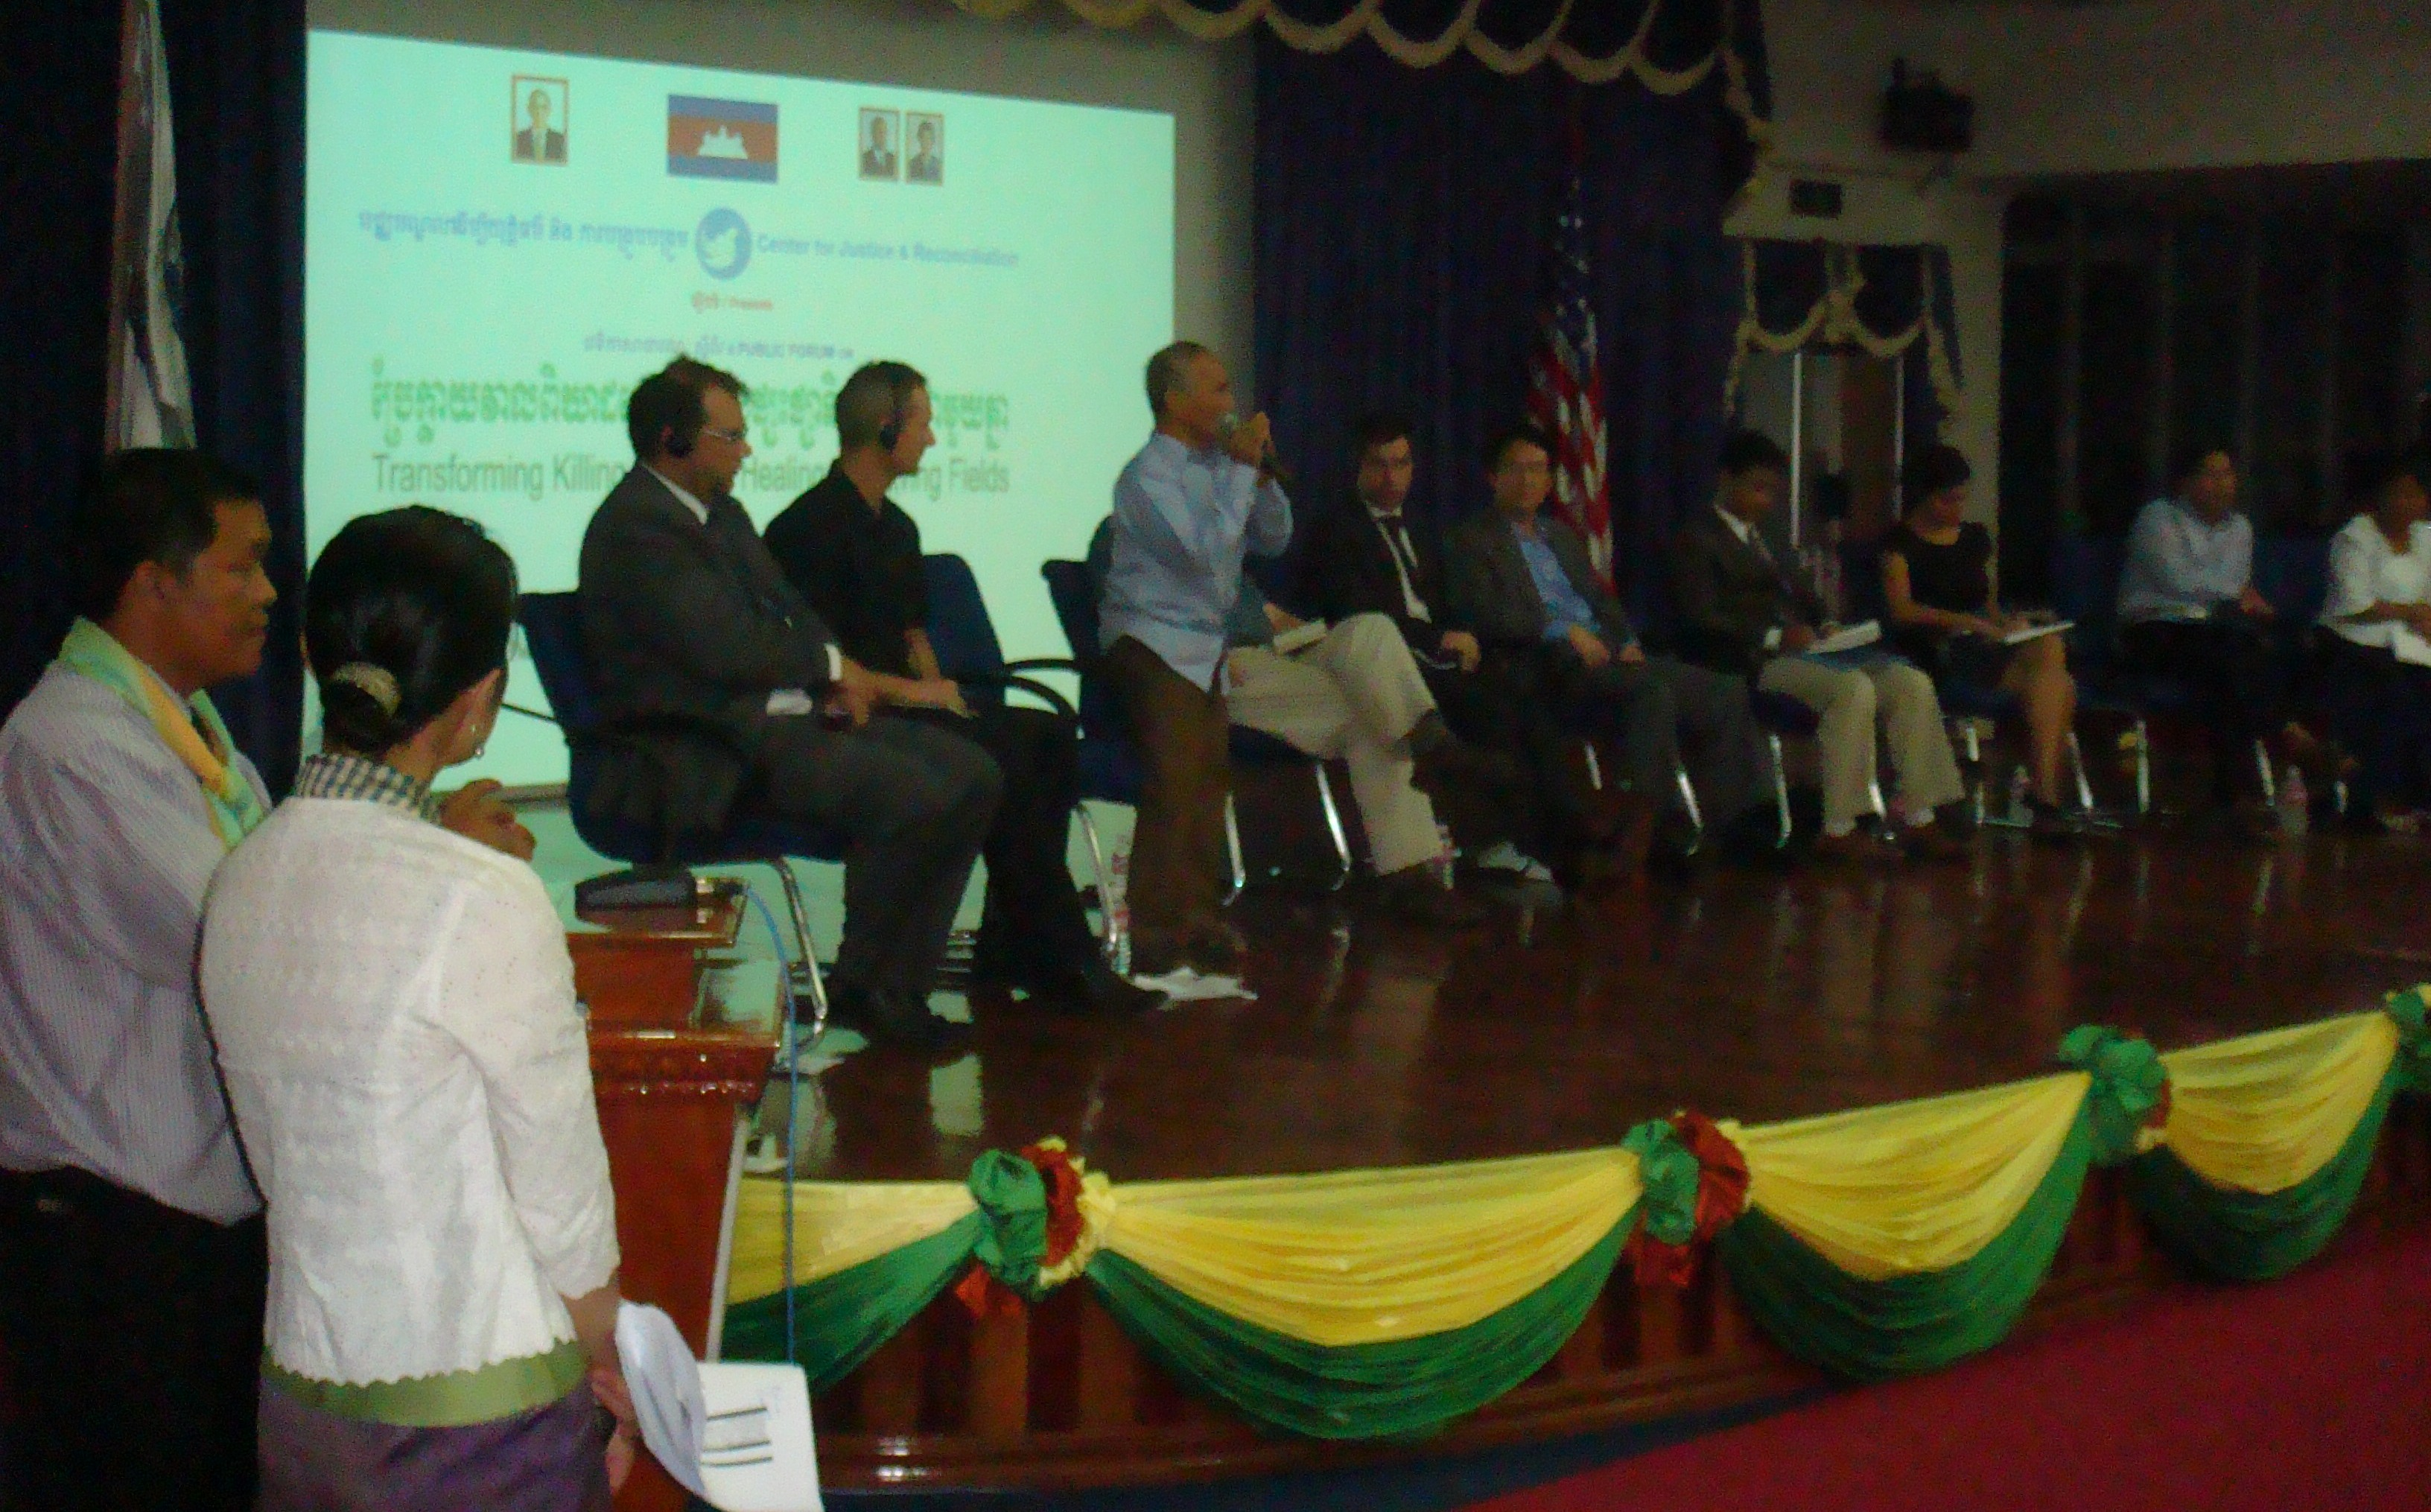 Panelists at CJR public forum, 23 July 2010